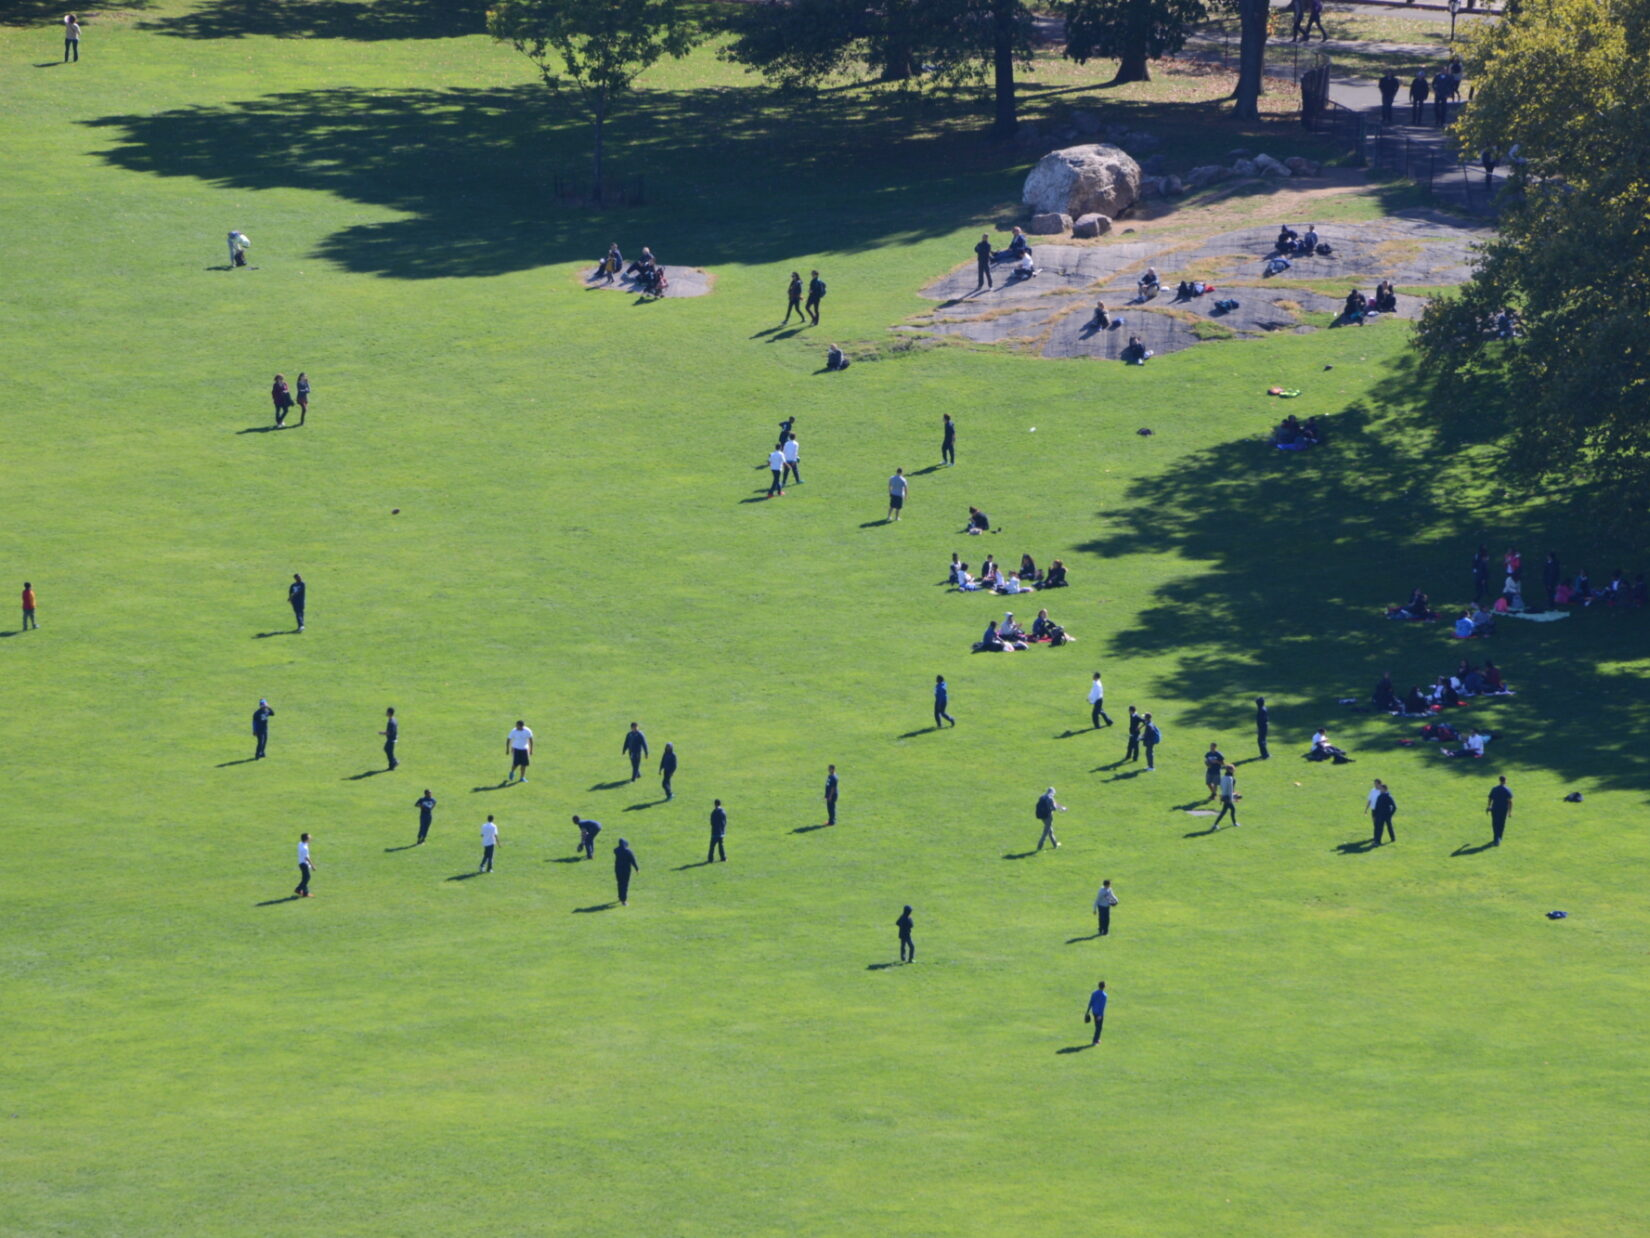 An aerial view of the Sheep Meadow showing people playing football